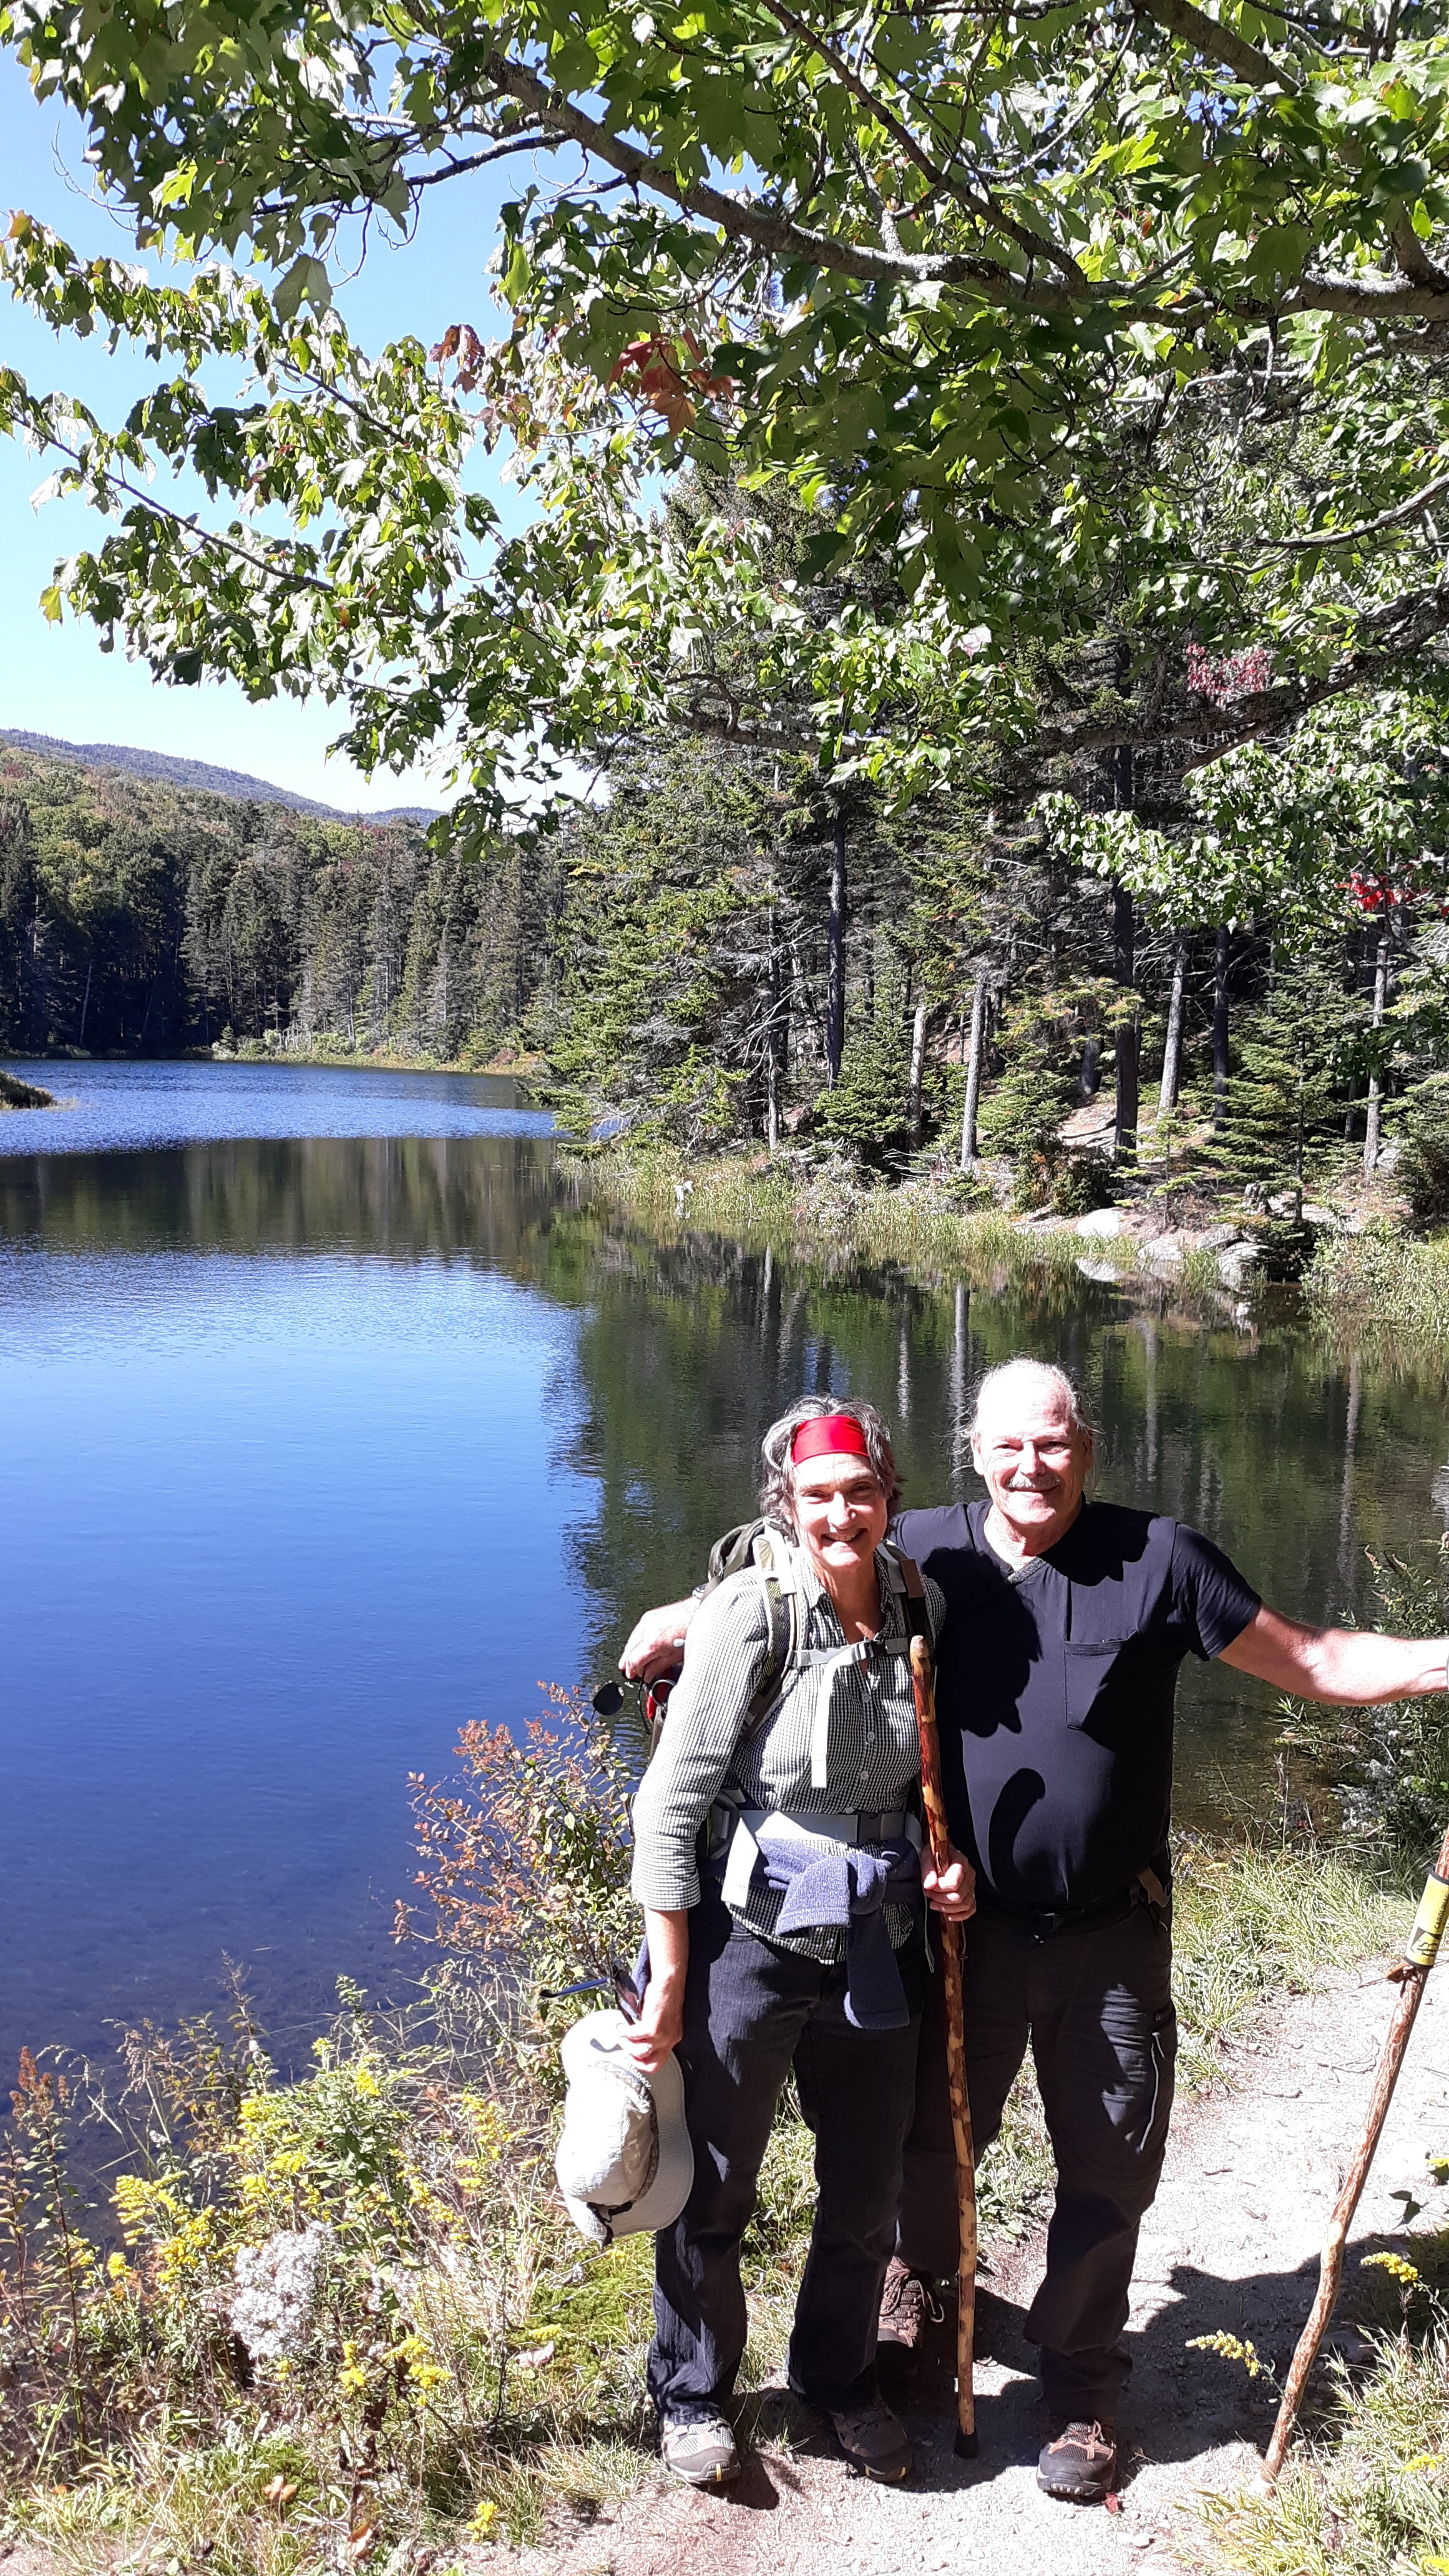 Happy hikers in New Hampshire's White Mountains.